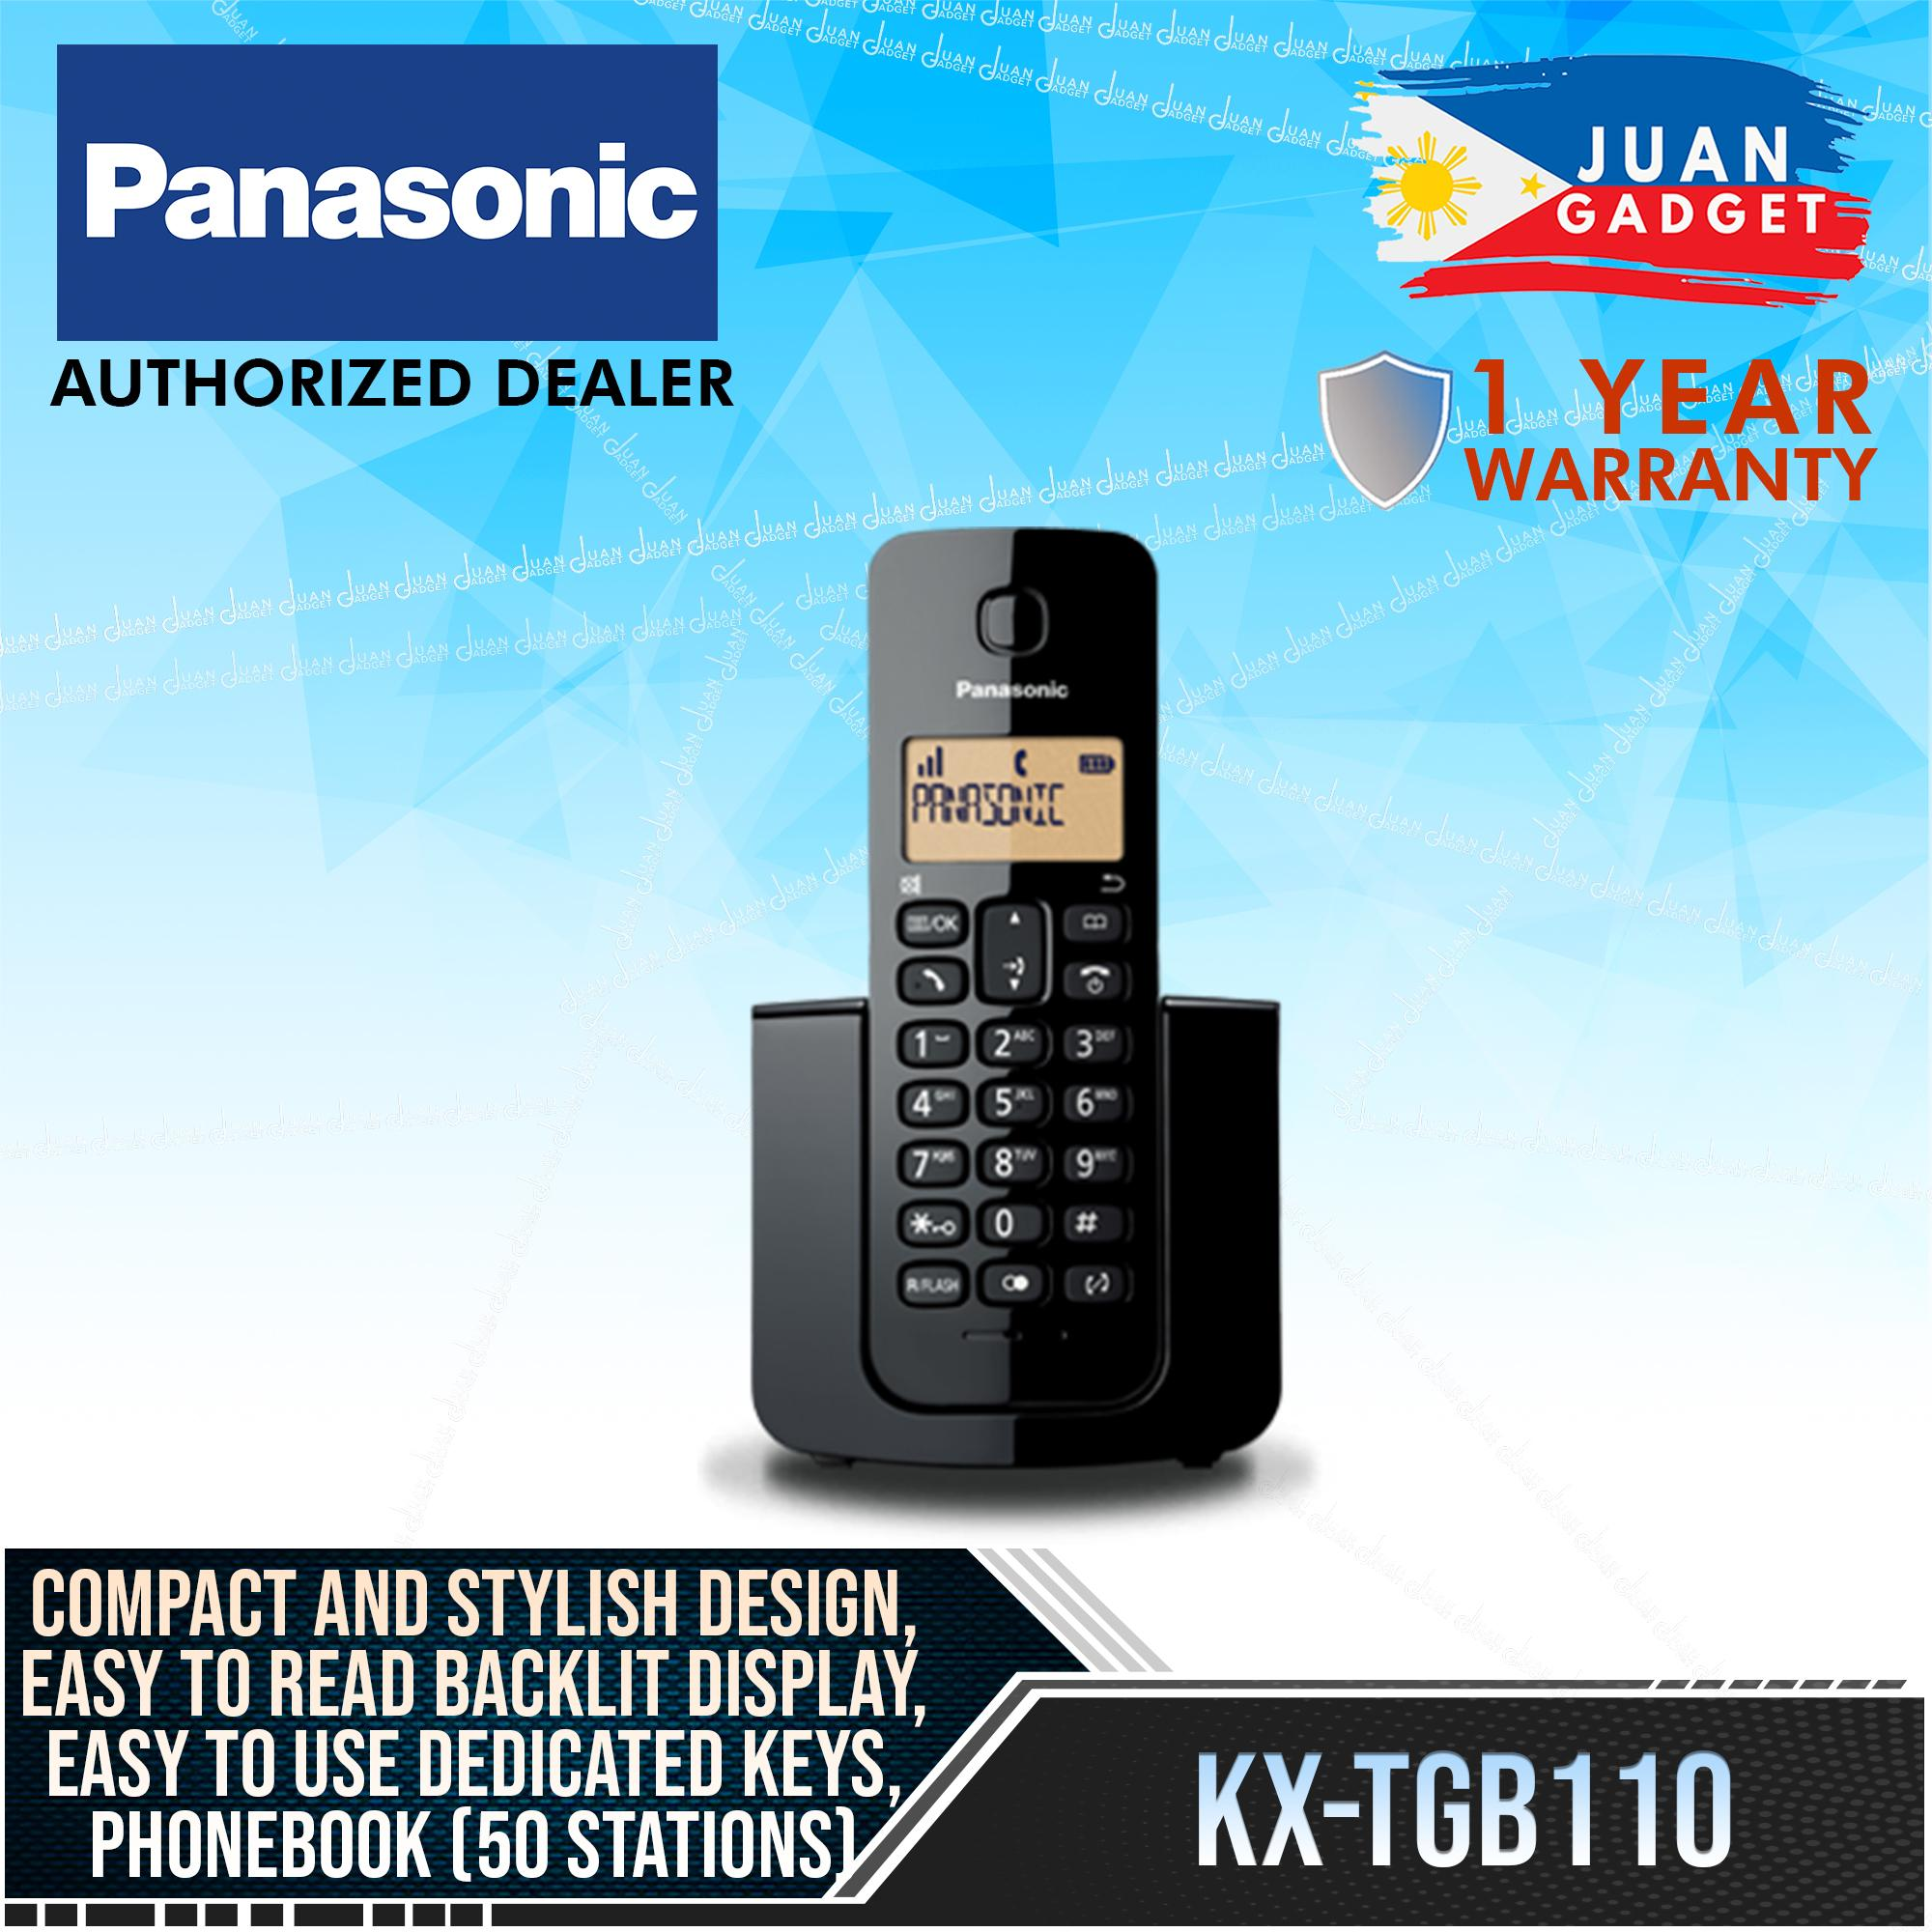 Panasonic KX-TGB110 Wireless Cordless Telephone Landline With Backlight, 50  Phonebook Stations, 100 Hours Standby Time